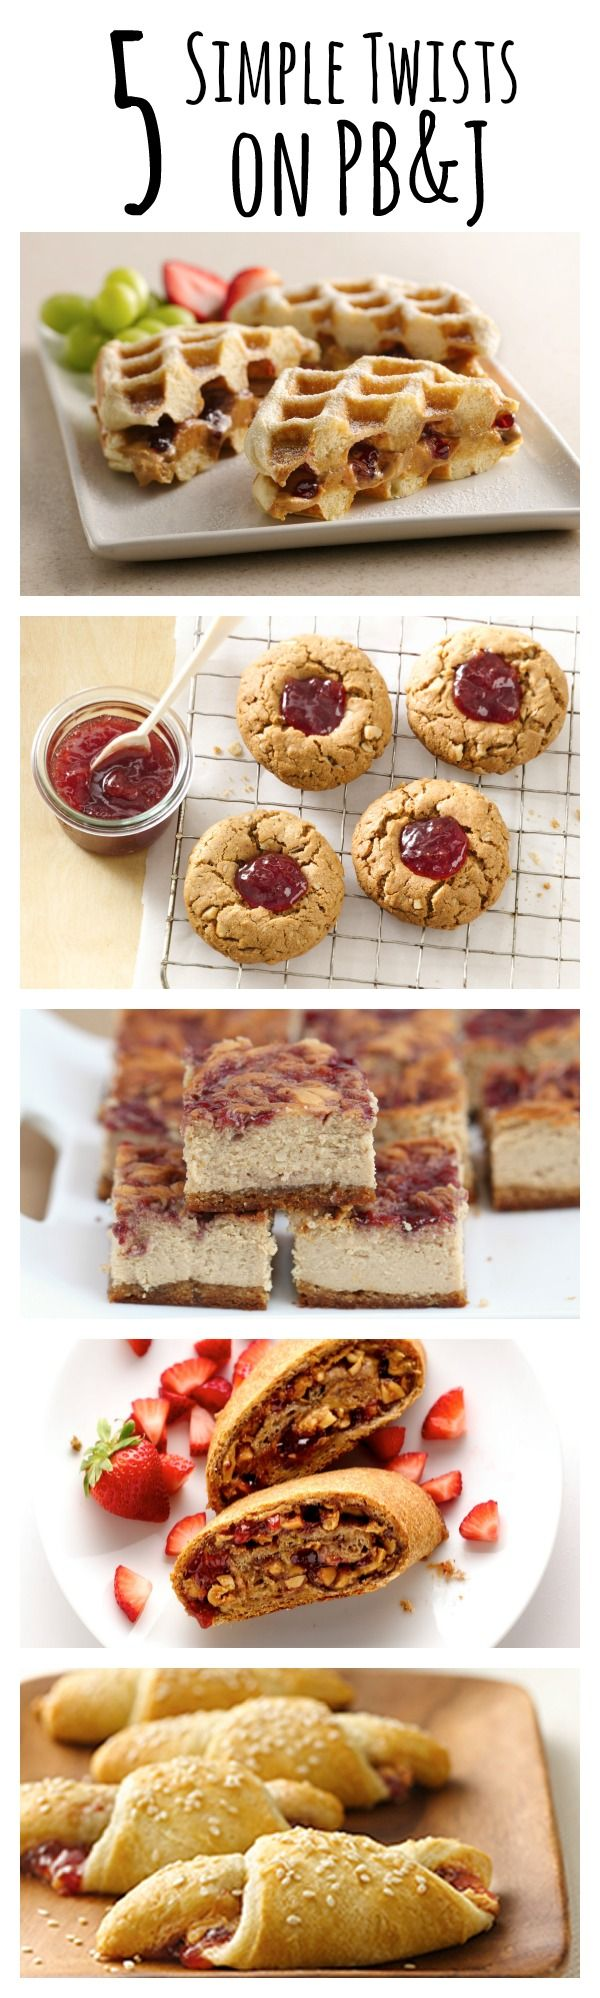 5 Simple Twists on PB & J to take the classic combo to the next level!